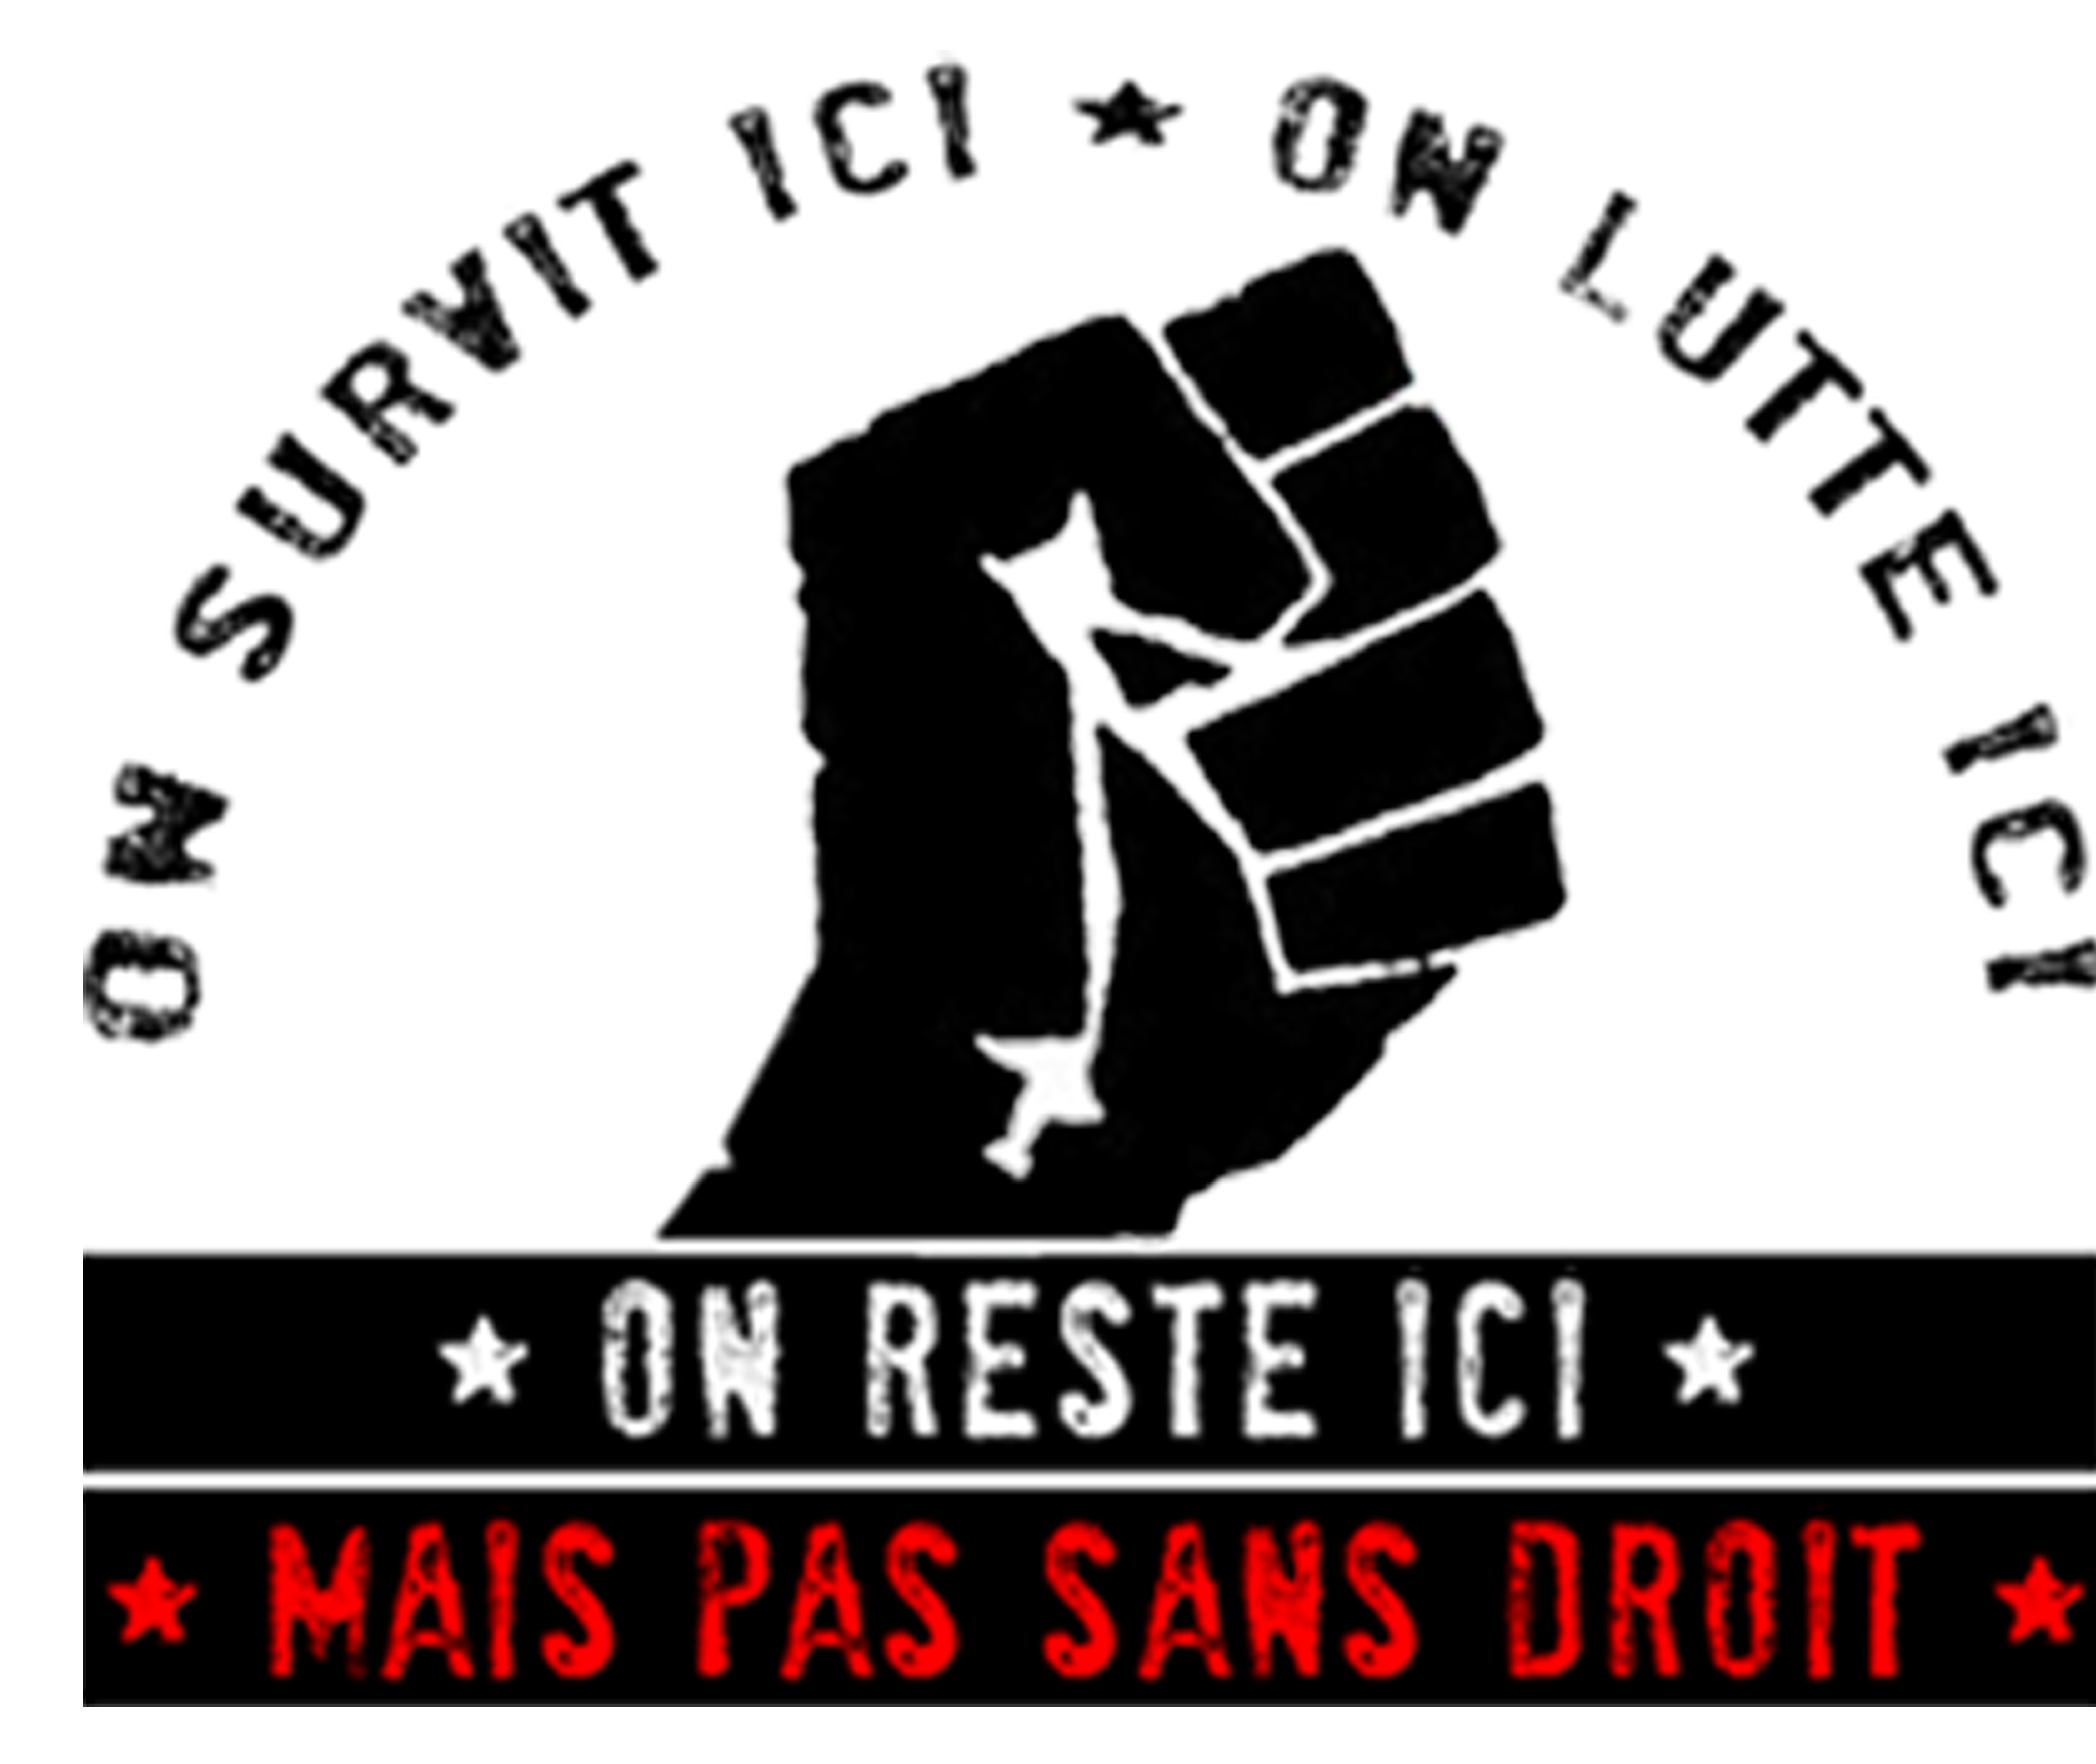 http://spbelgique.files.wordpress.com/2012/04/2.png